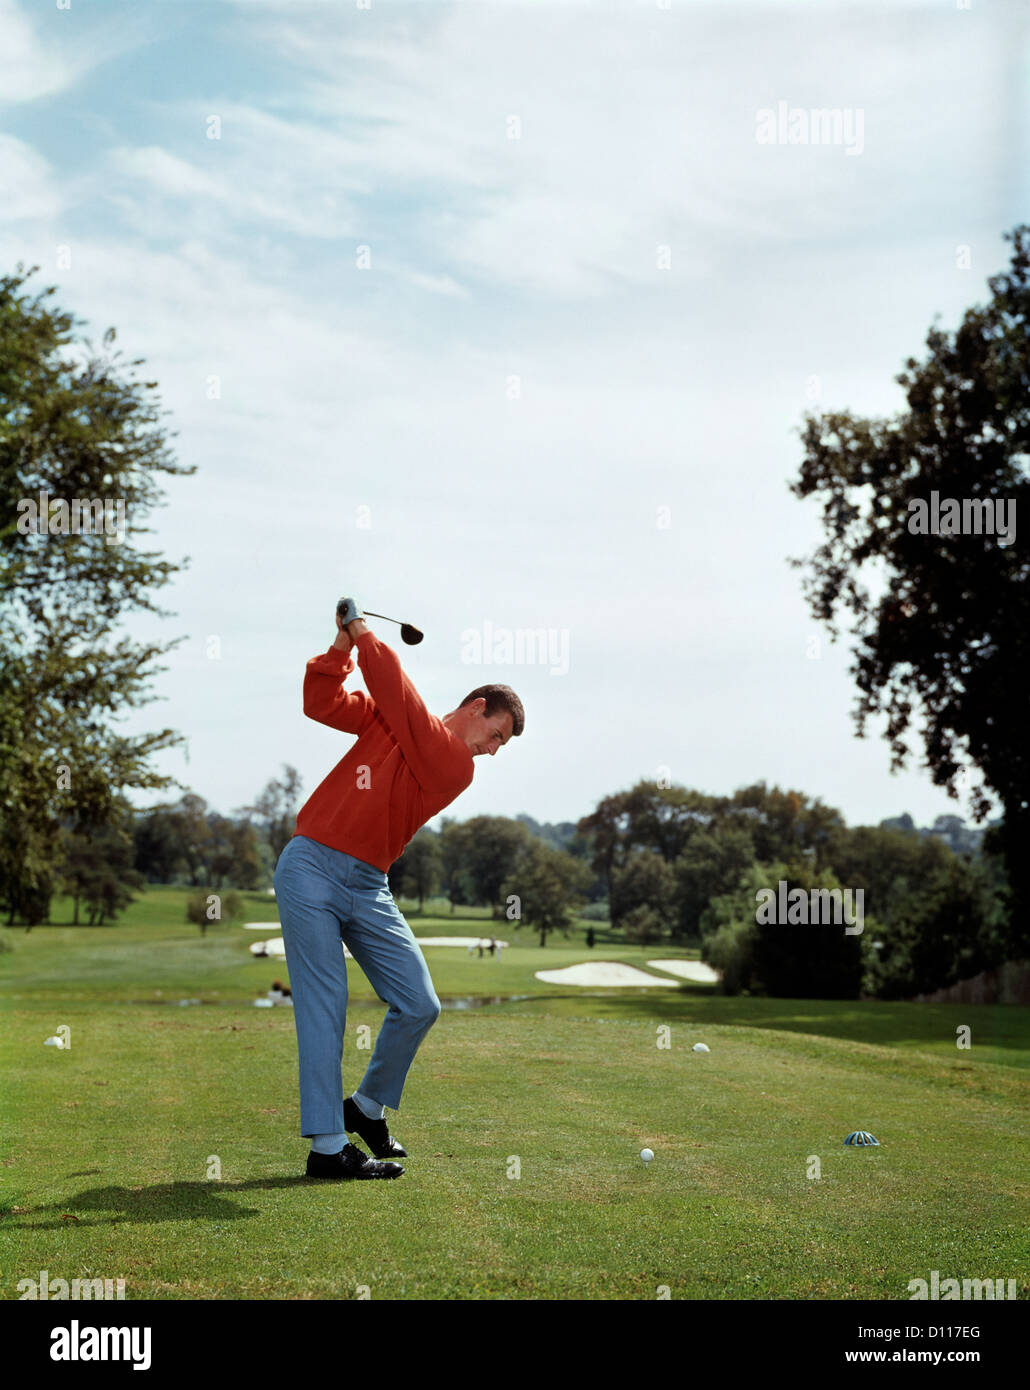 GOLFER TEEING OFF DOWN FAIRWAY ON GOLF COURSE - Stock Image